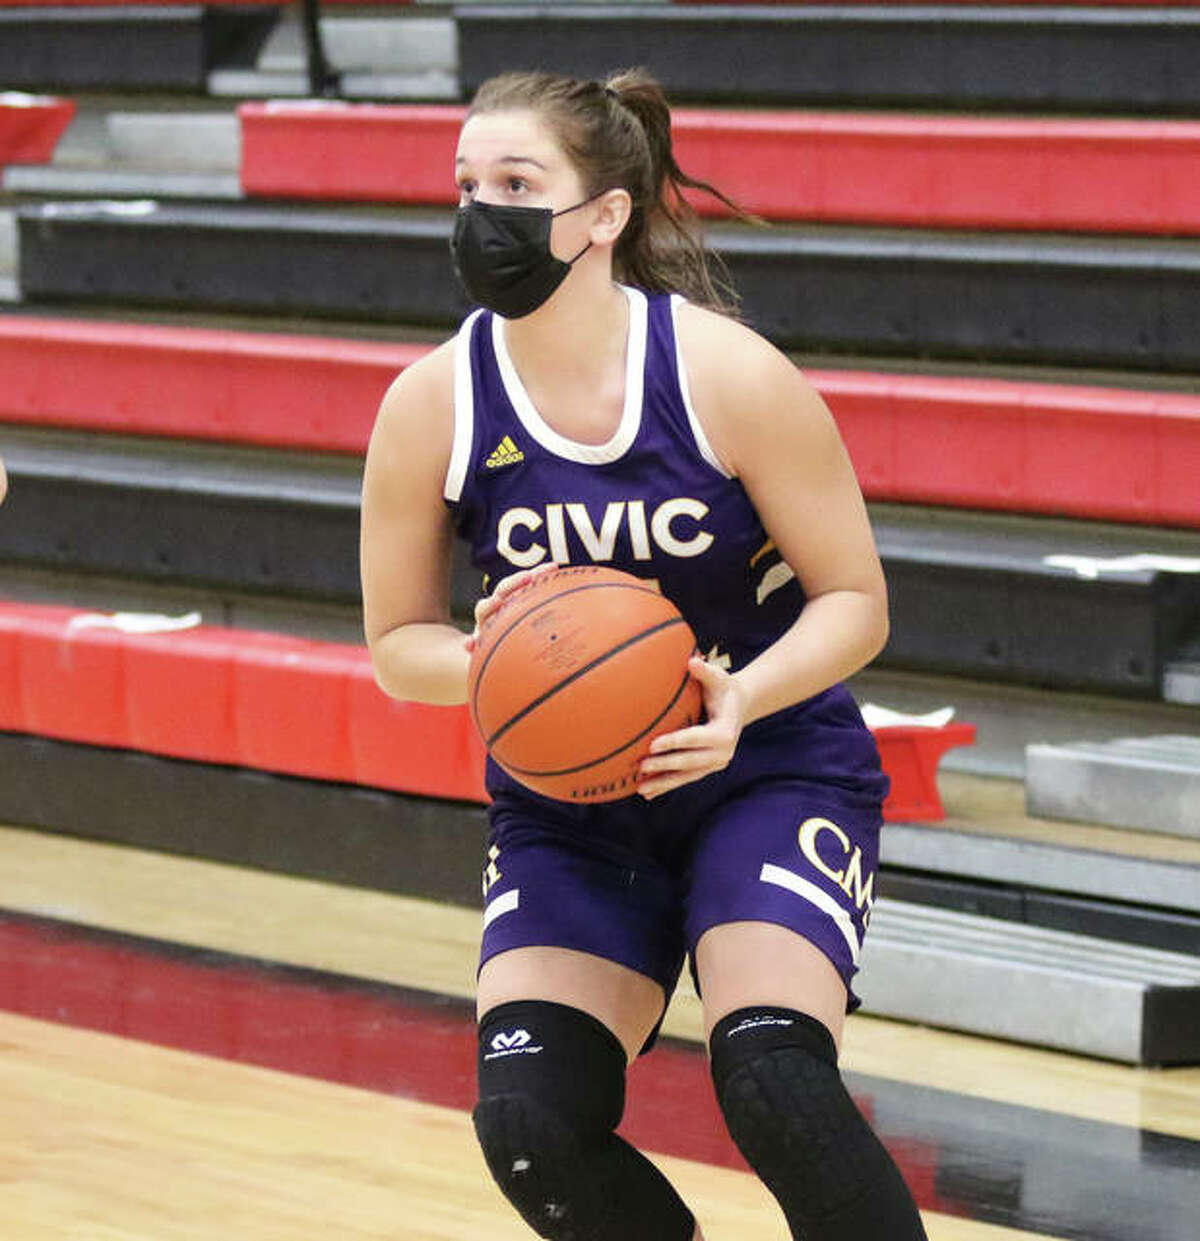 CM senior Harper Buhs looks to shoot during the Eagles' MVC victory last Thursday in Highland. Buhs is back for CM after missing most of her junior season recovering from ACL surgery.